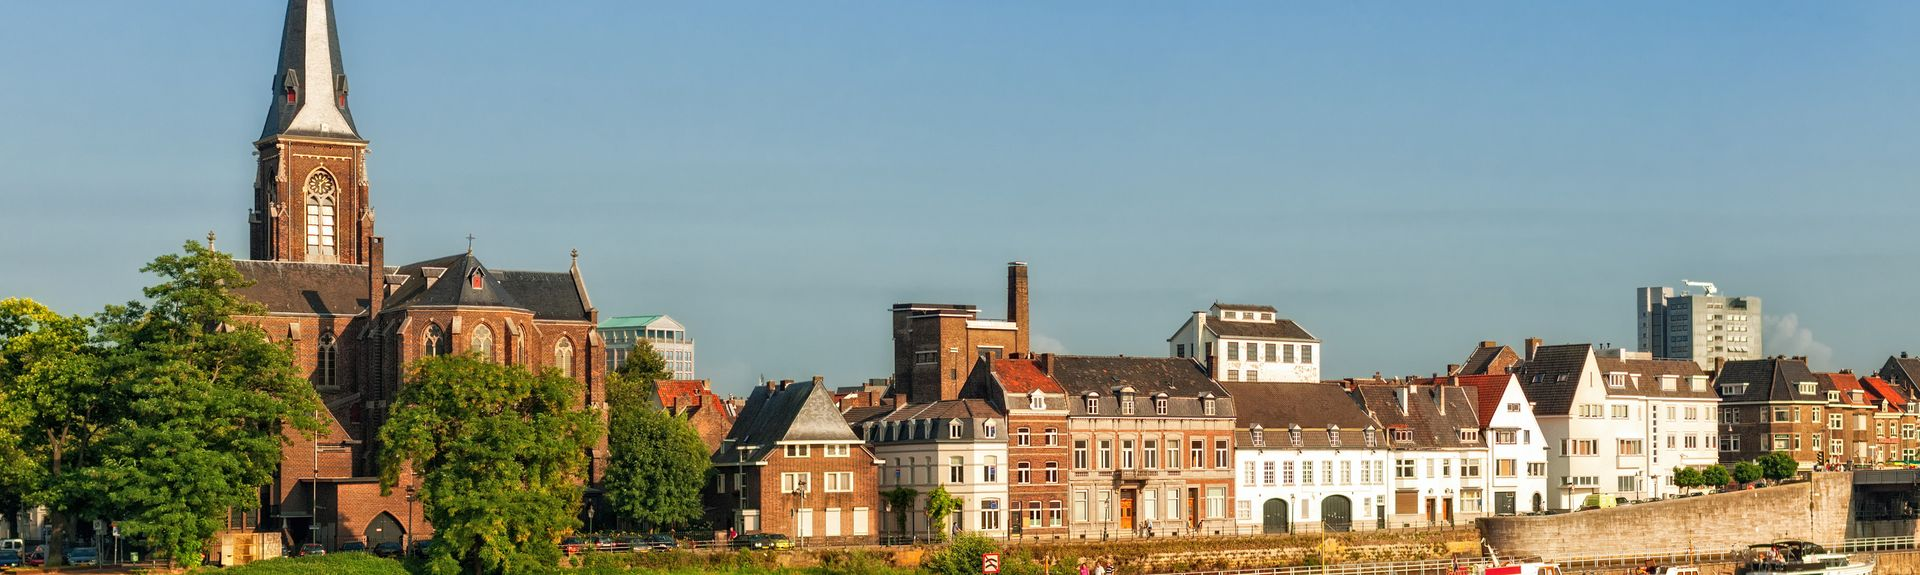 Maastricht, Limbourg, Pays-Bas